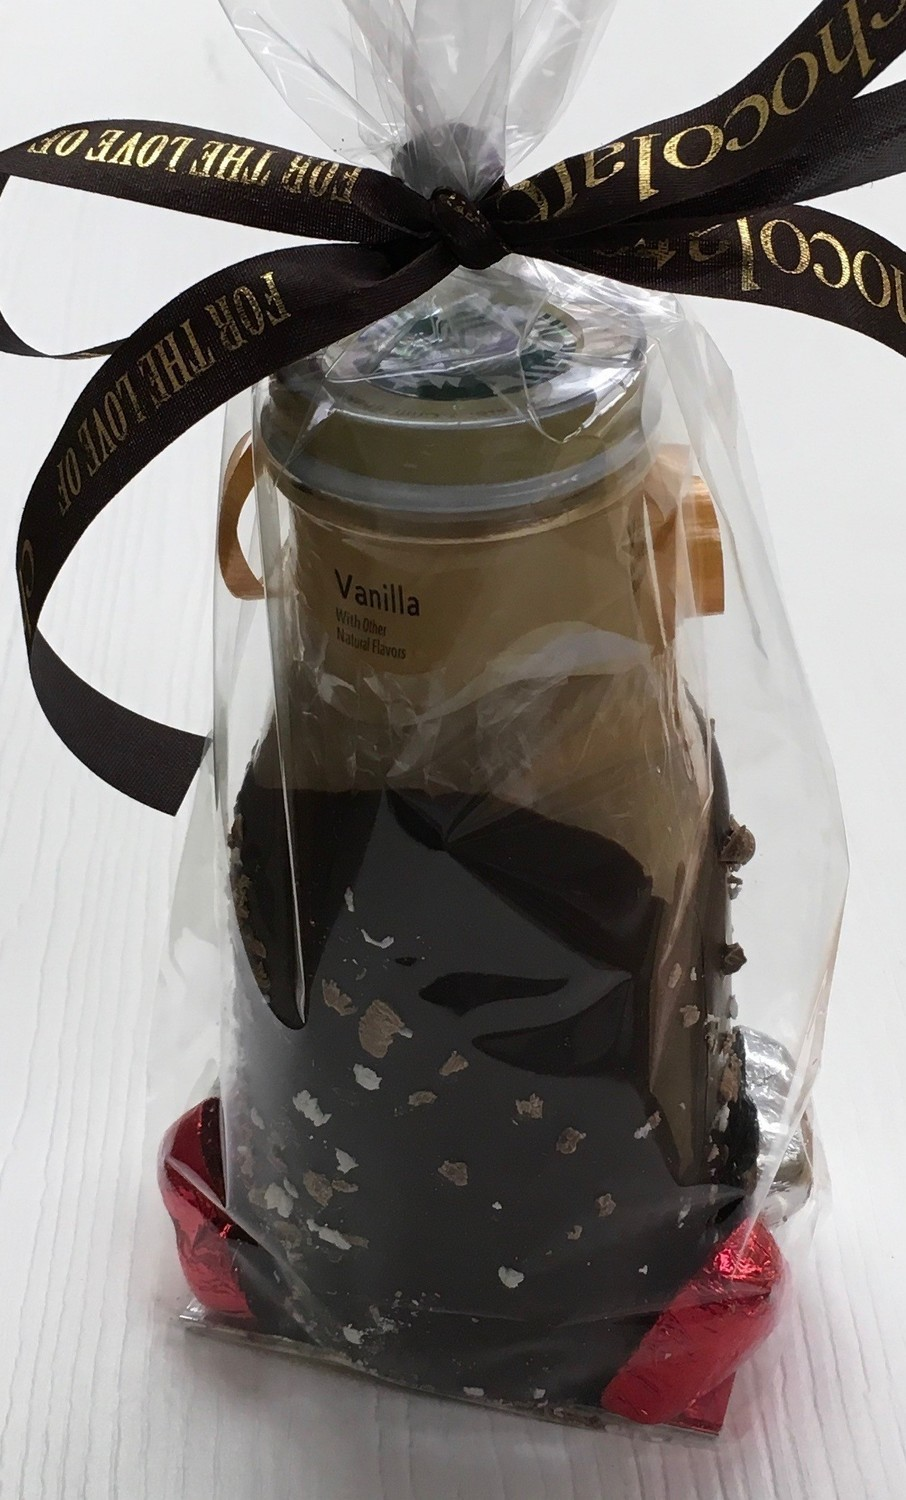 F - Starbucks Frappacino Vanilla or Coffee.  Chocolate Covered with foiled heart accents.